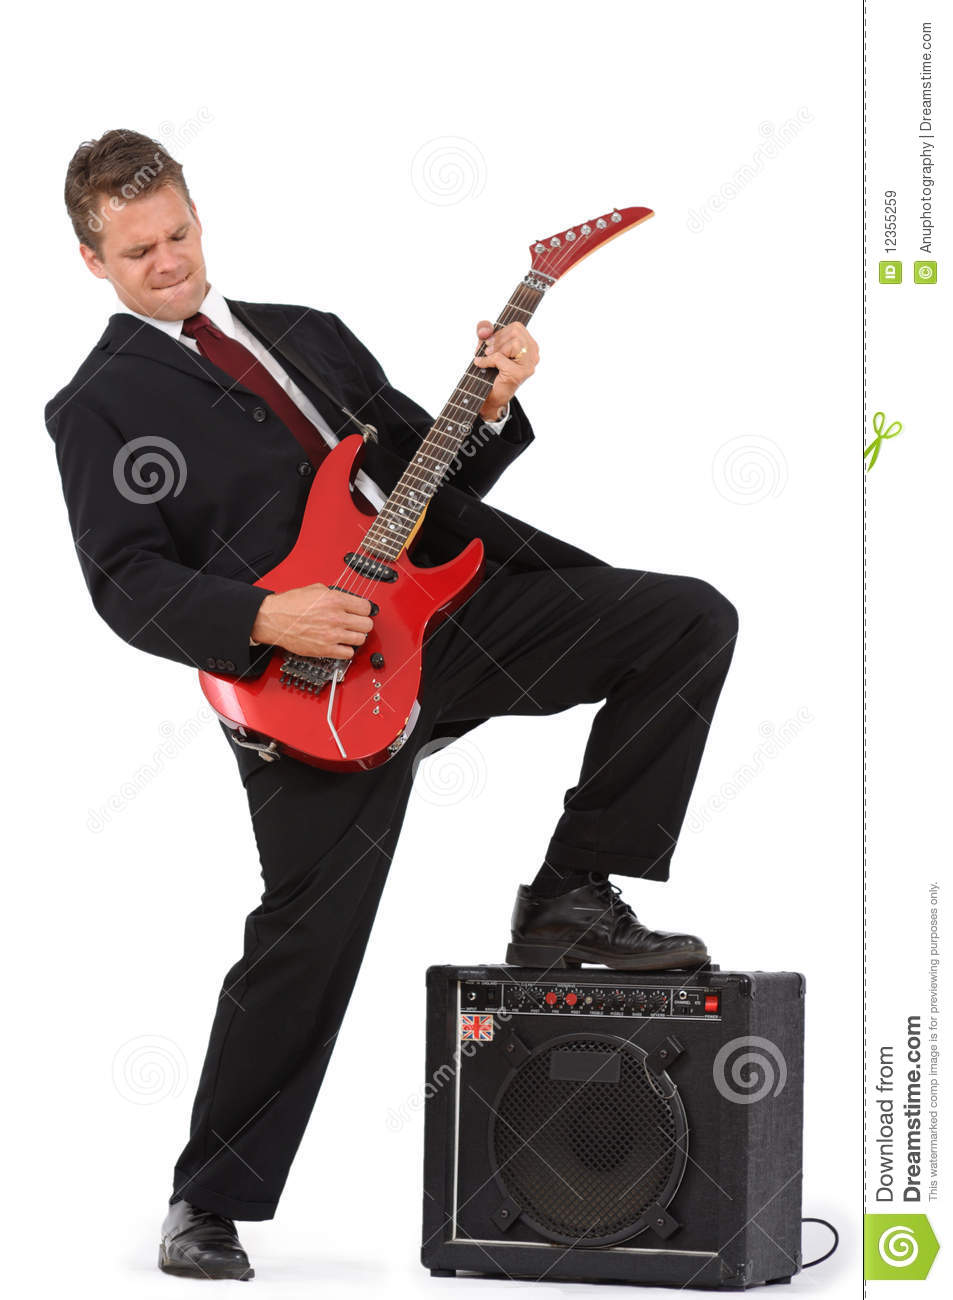 Business man rocking out on red guitar stock image